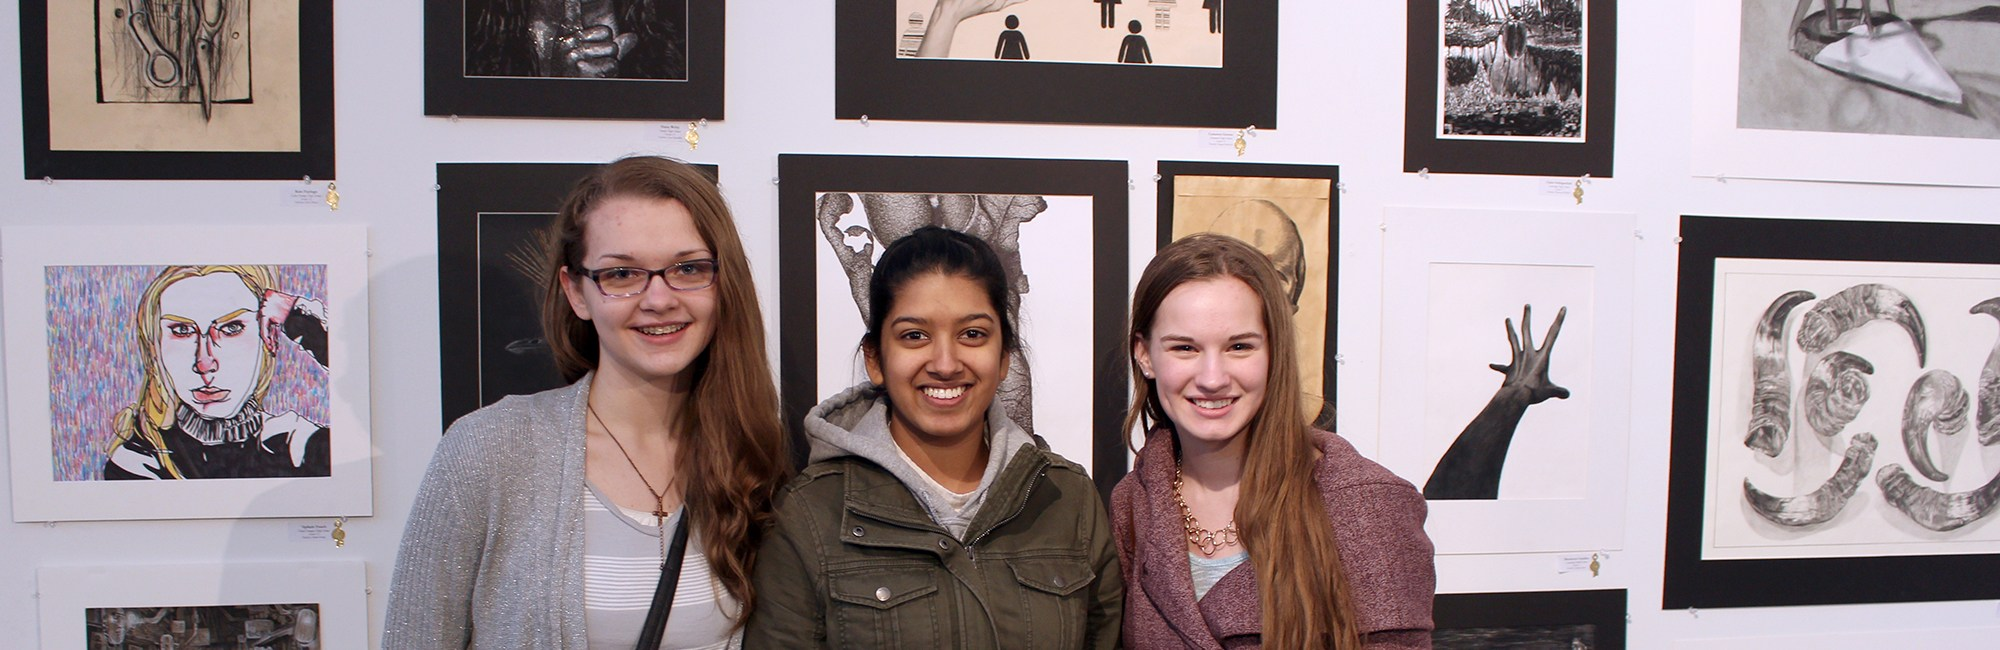 Students at the Scholastic Art Show in Portland